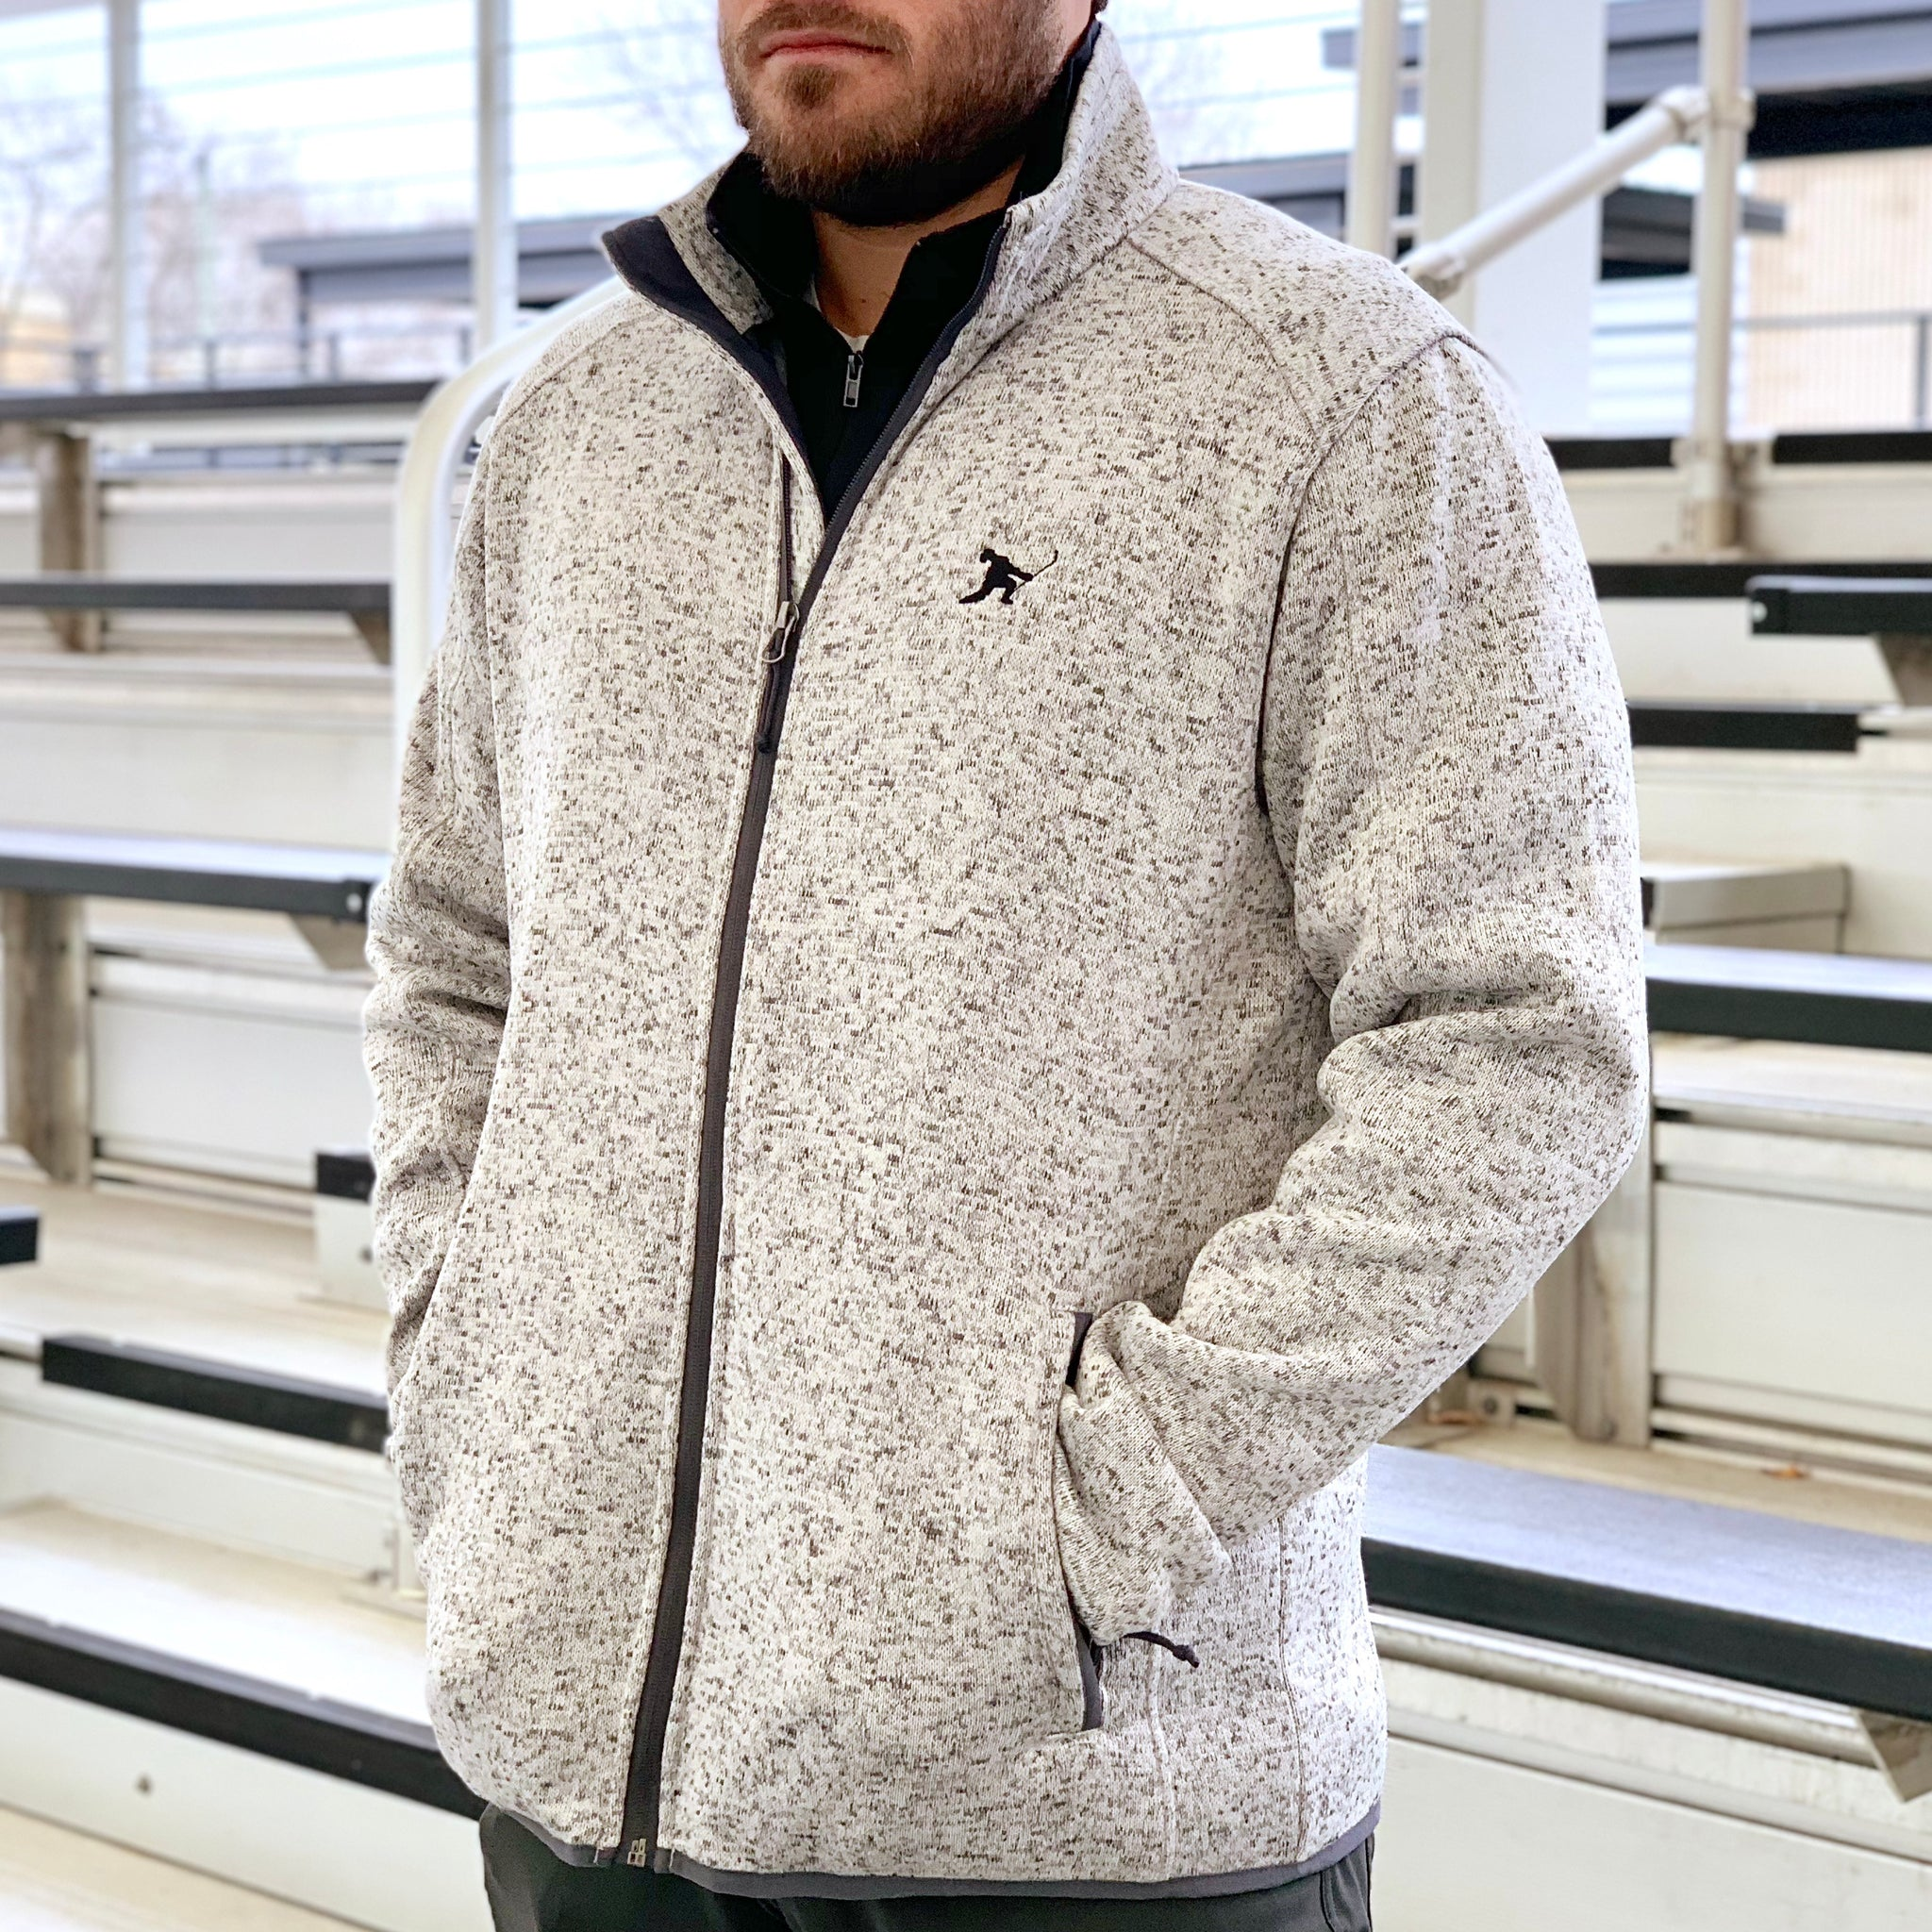 Team Issued *Sweater Knit Fleece Jacket - Beauty Status Hockey Co.